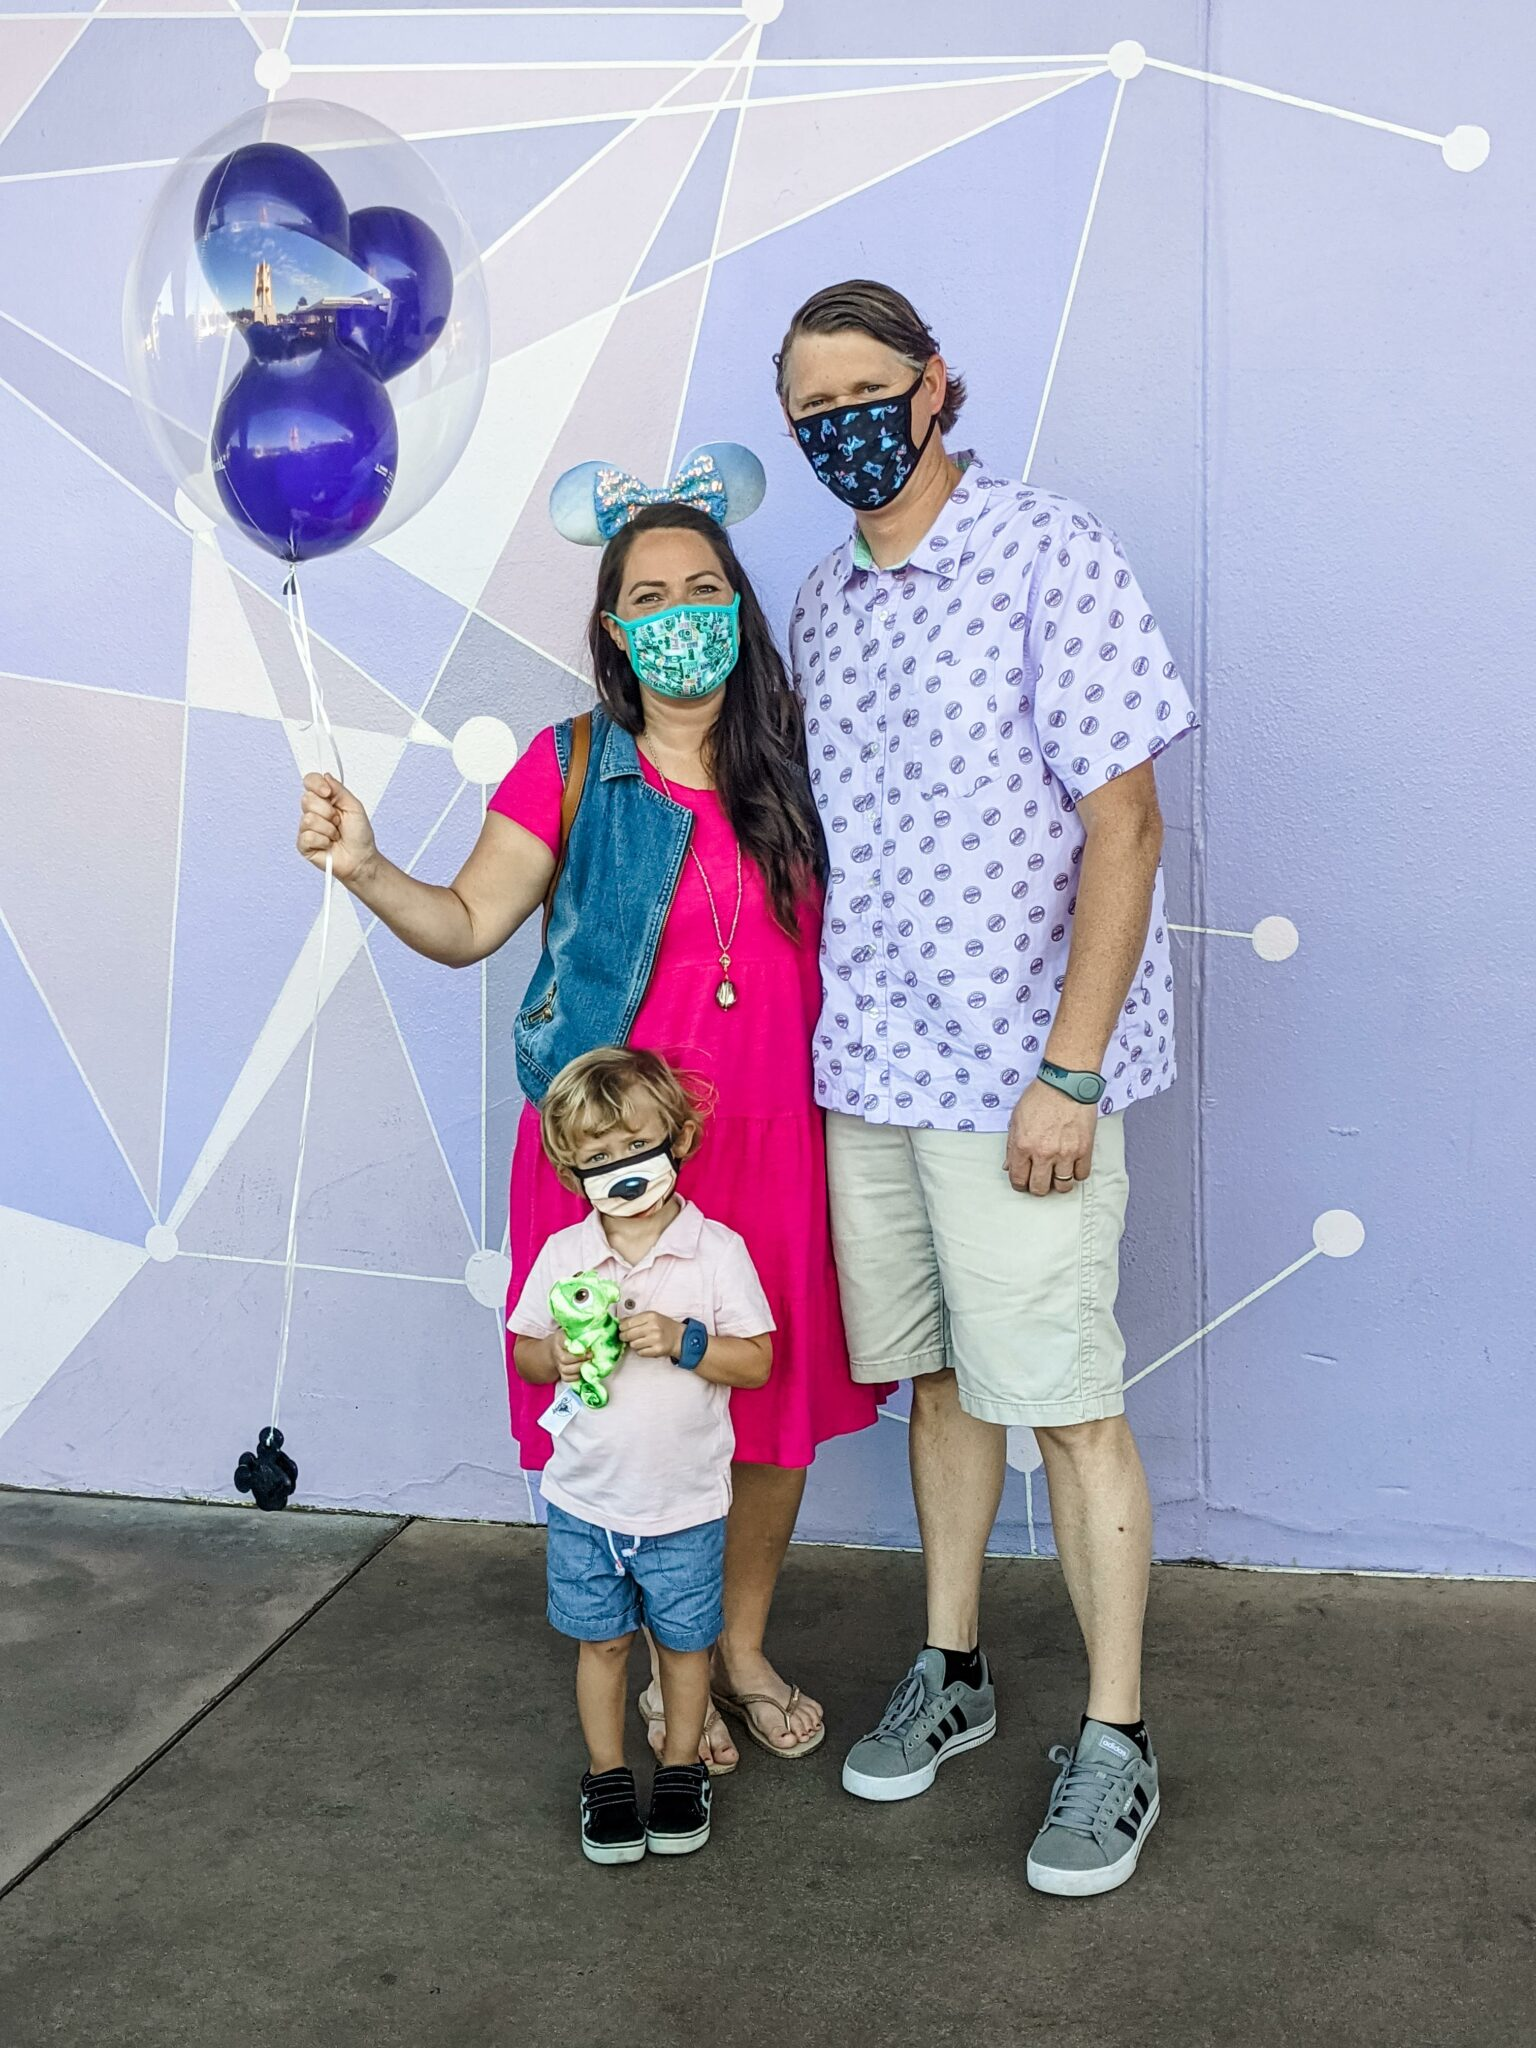 Tips for Taking Great Pictures at Disney World While Wearing a Mask All Things with Purpose Sarah Lemp